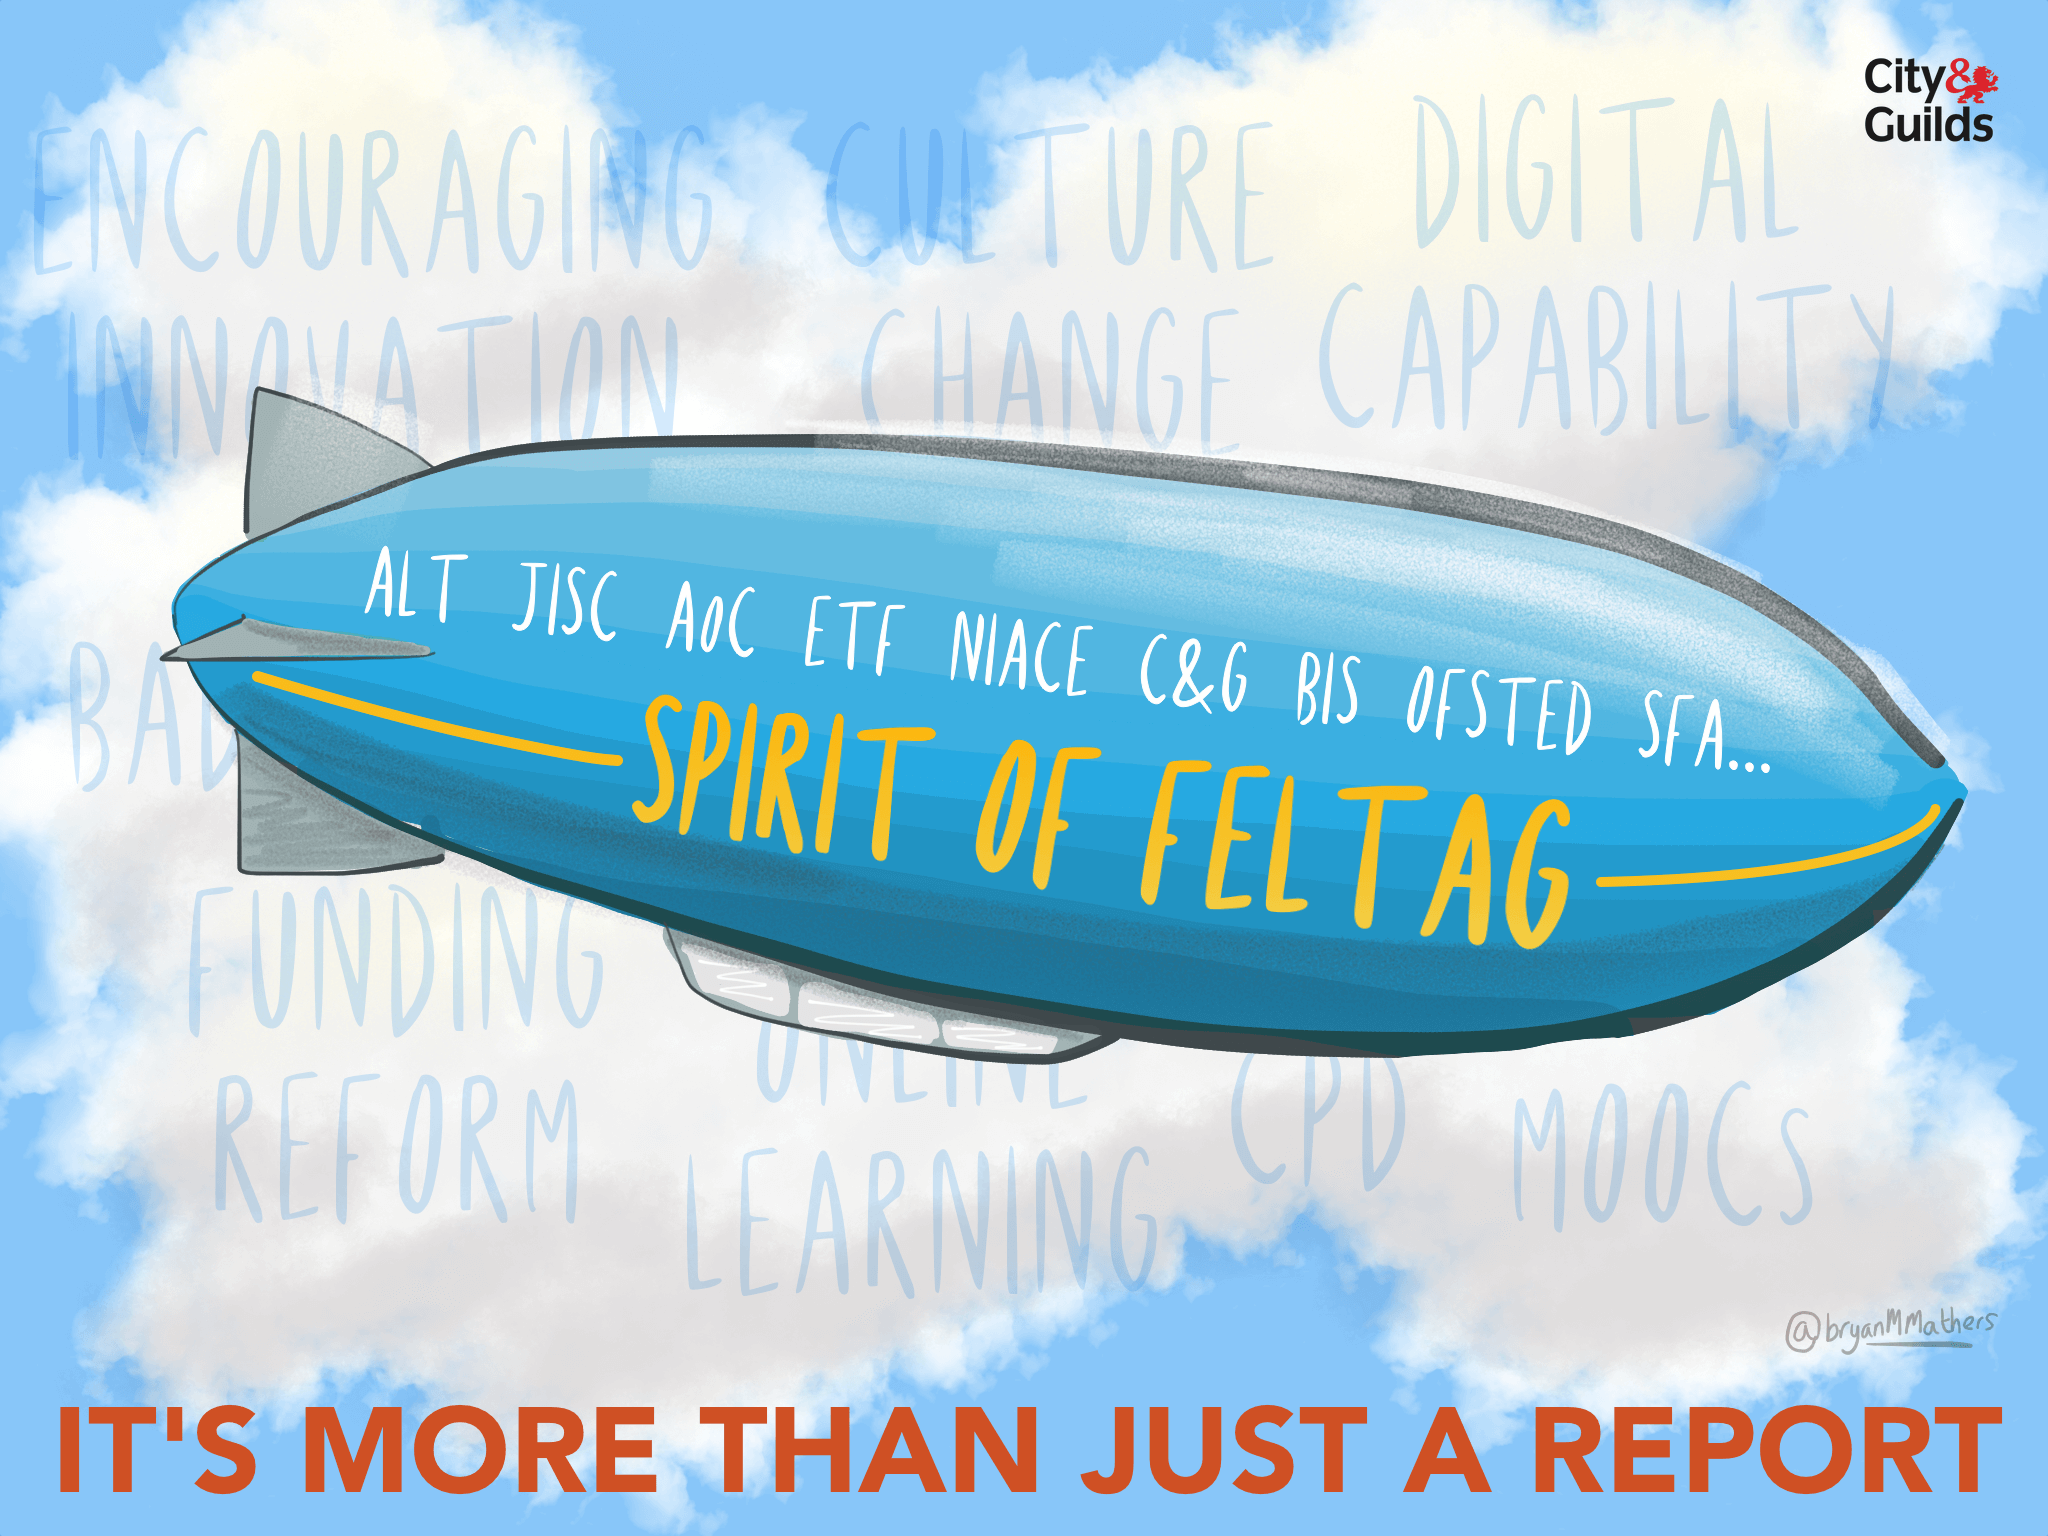 Its more than just a report